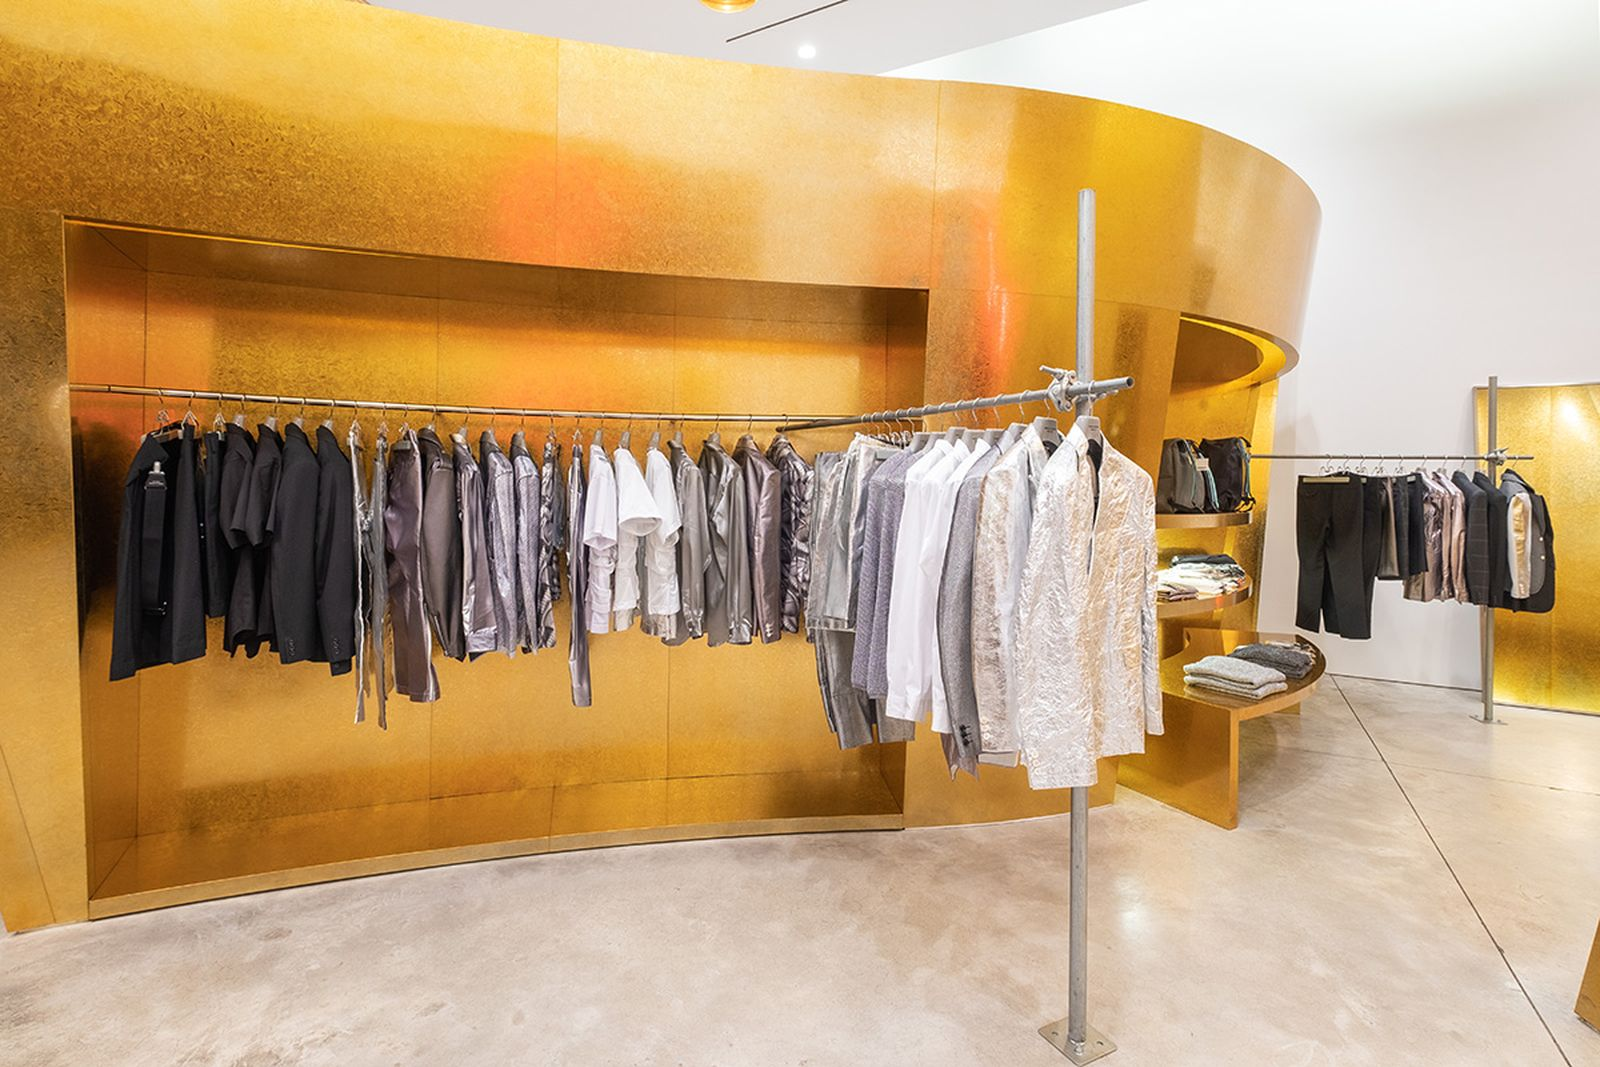 game-changers-best-store-interiors-changed-fashion-cdg-new-04